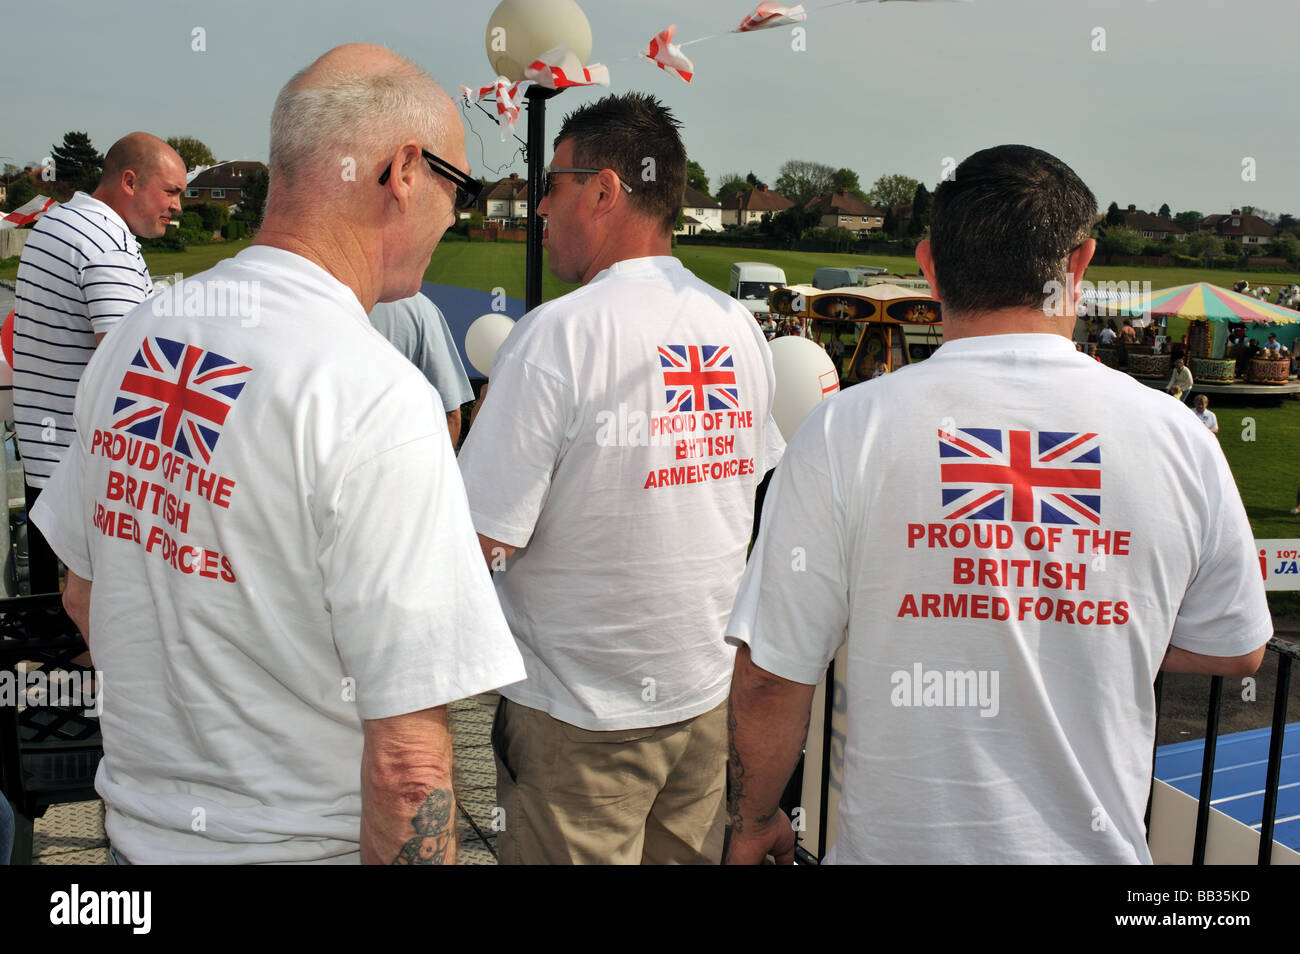 Three men wearing Tee Shirts with the slogan Proud Of The British Forces at a fundraising event Ewell Surrey UK - Stock Image